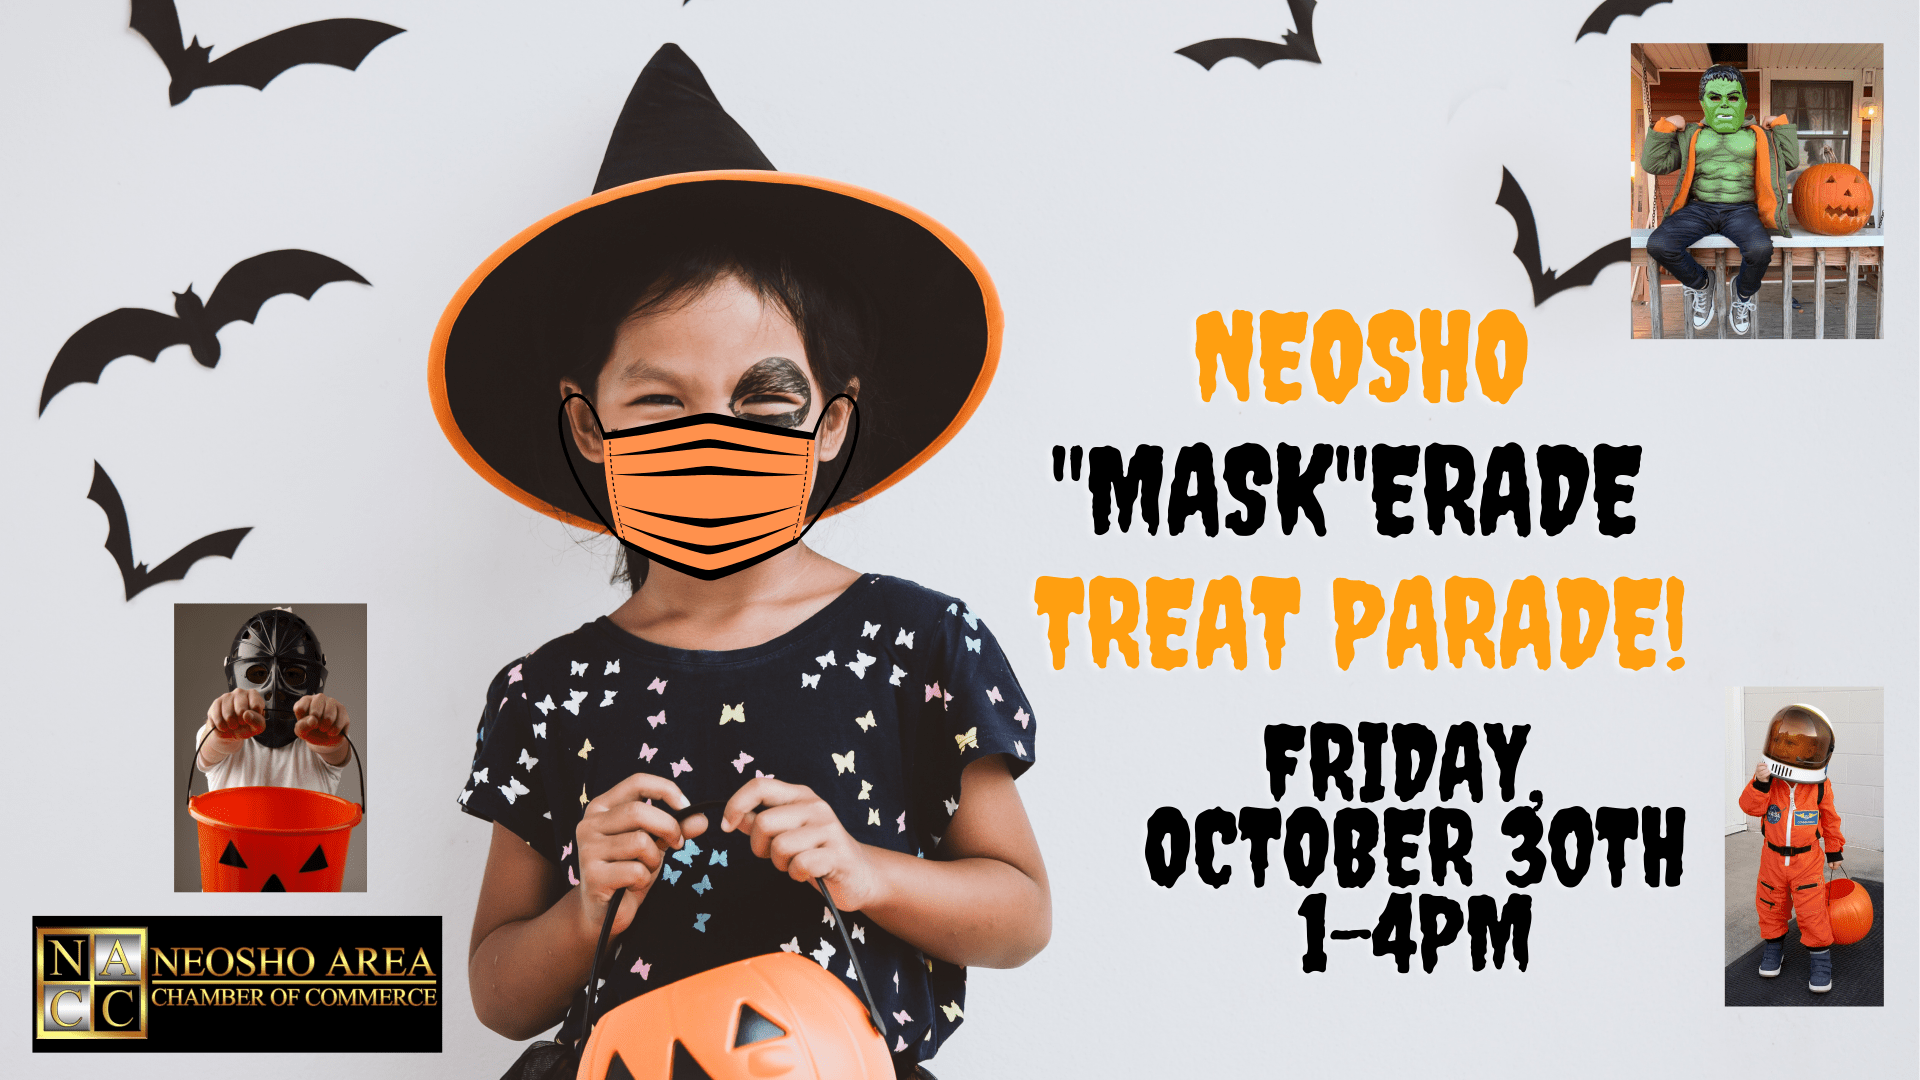 neosho-area-chamber-of-commerce-_mask_erade-treat-parade.-w1920.png